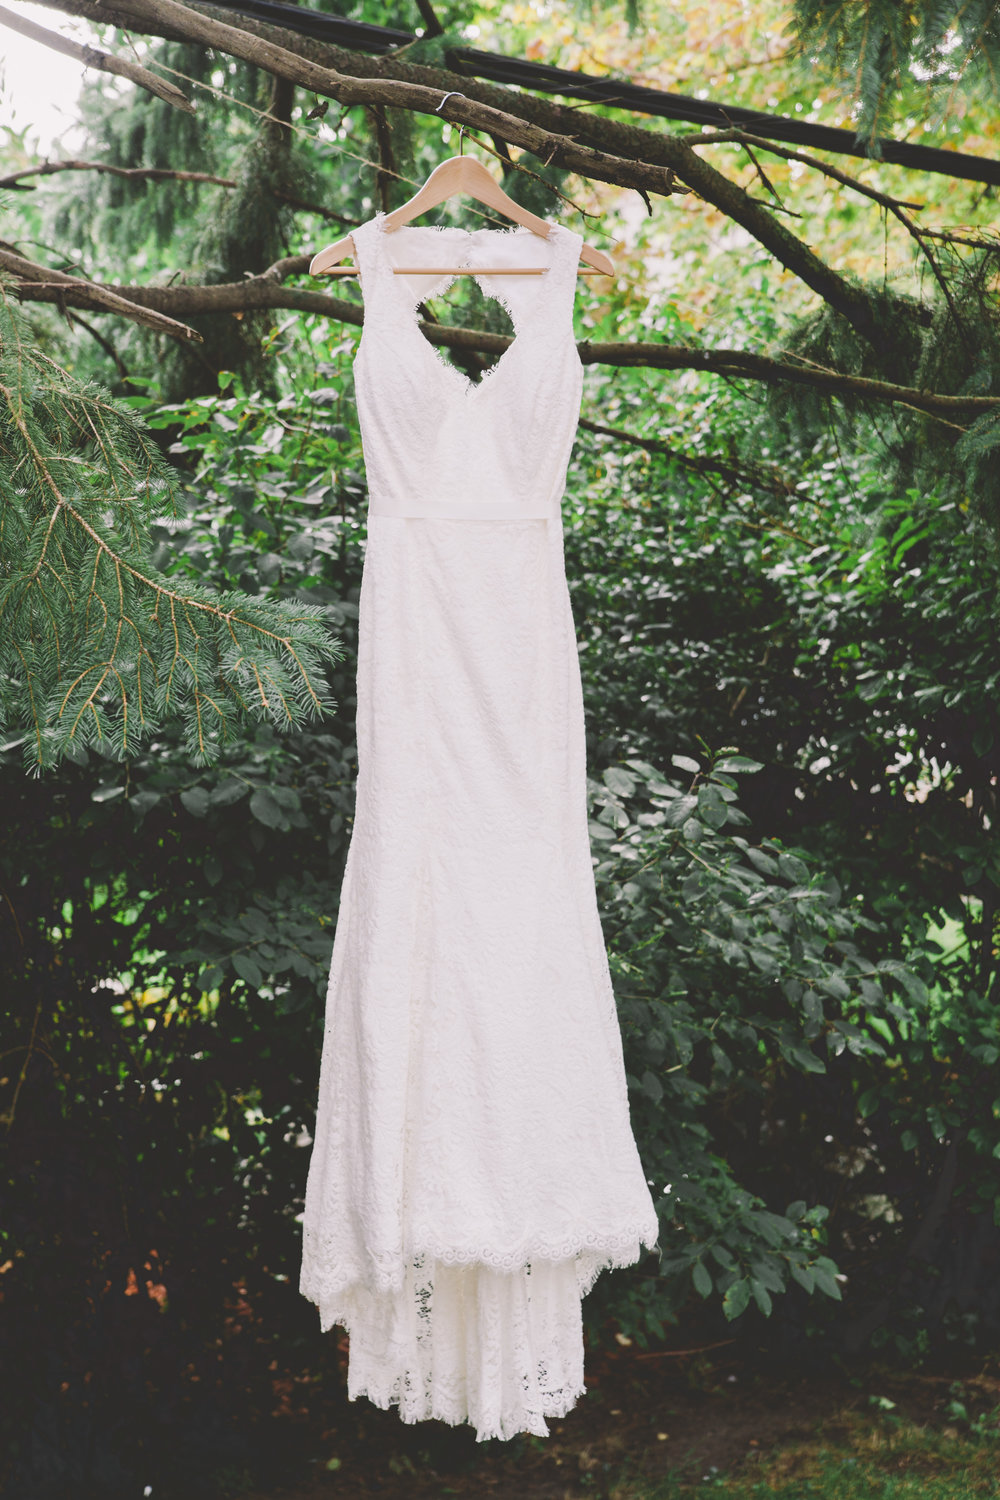 Wedding dress hanging from a tree